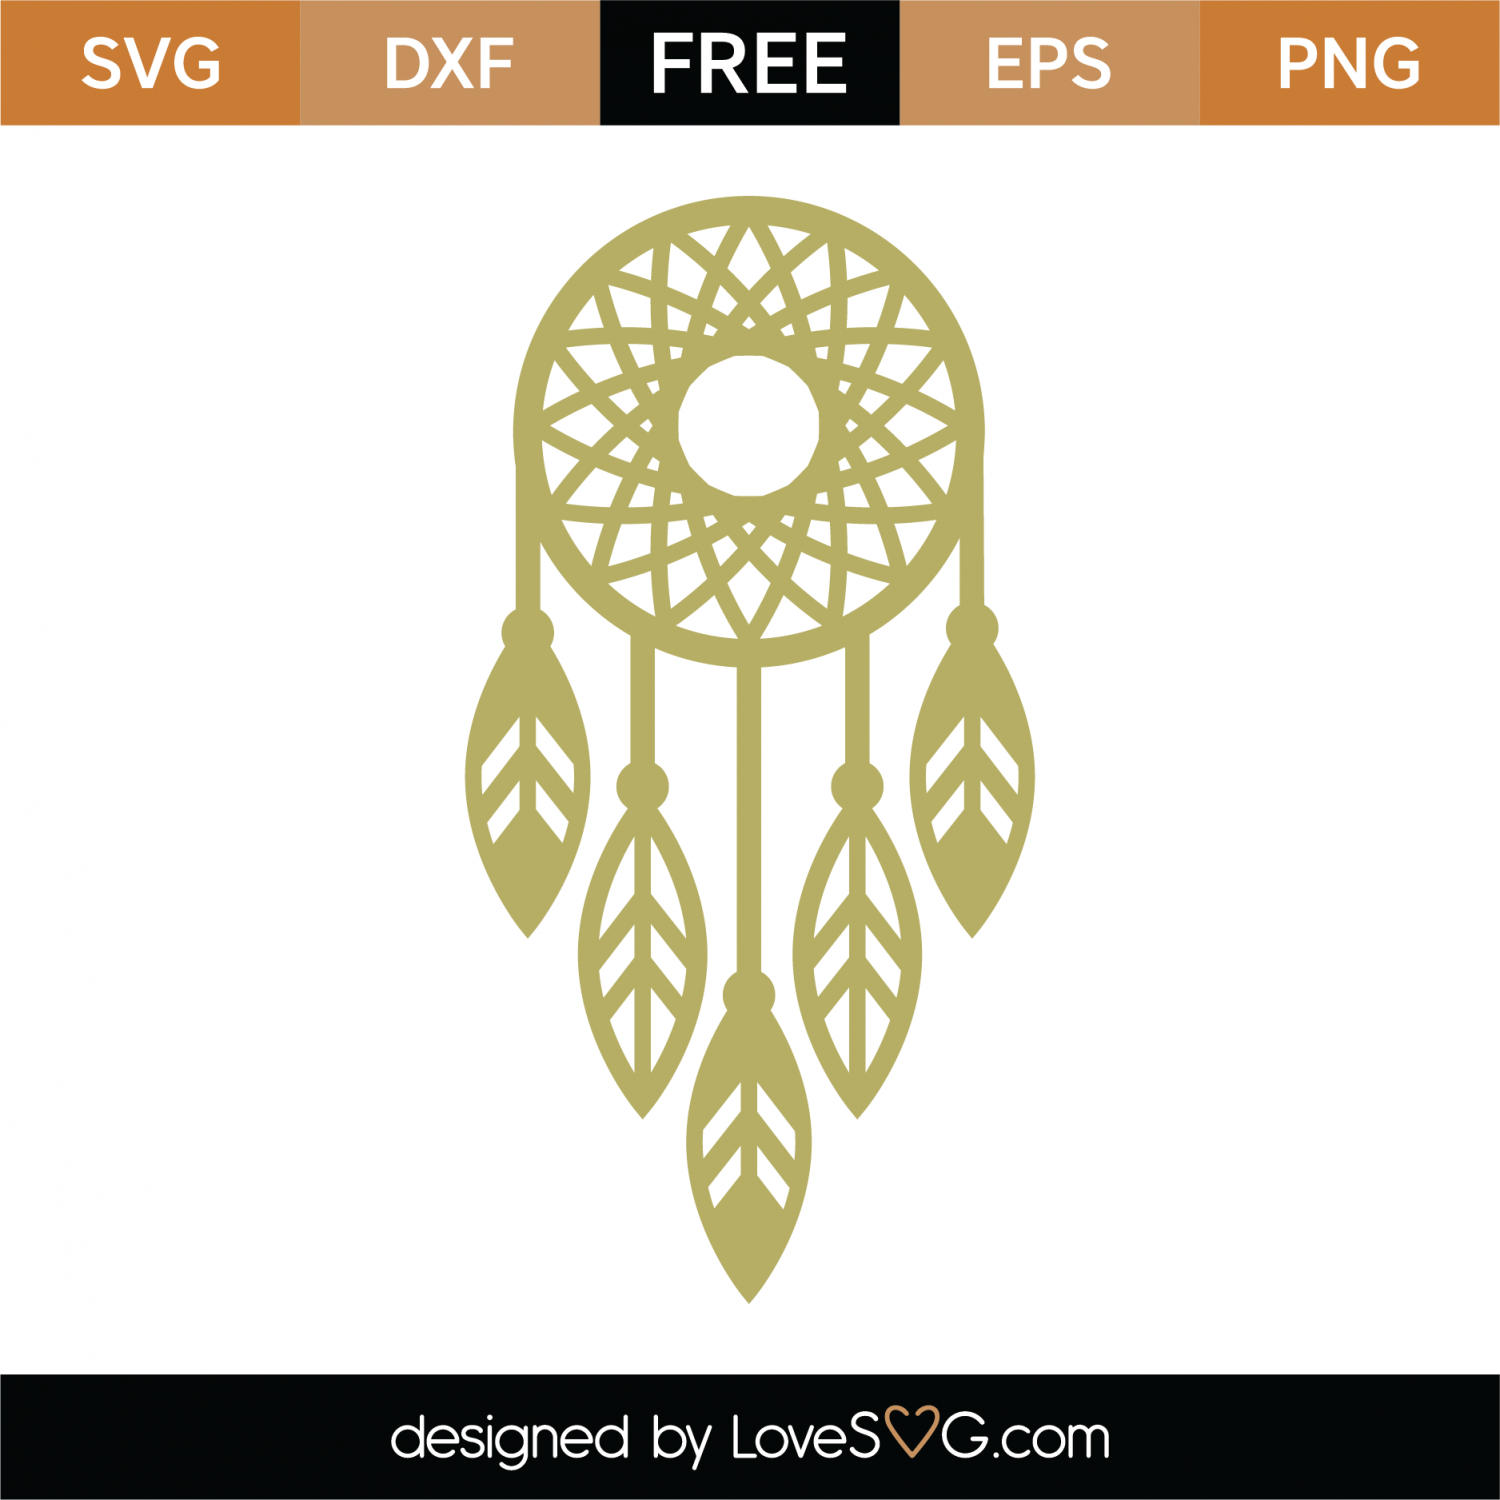 dreamcatcher svg free #64, Download drawings